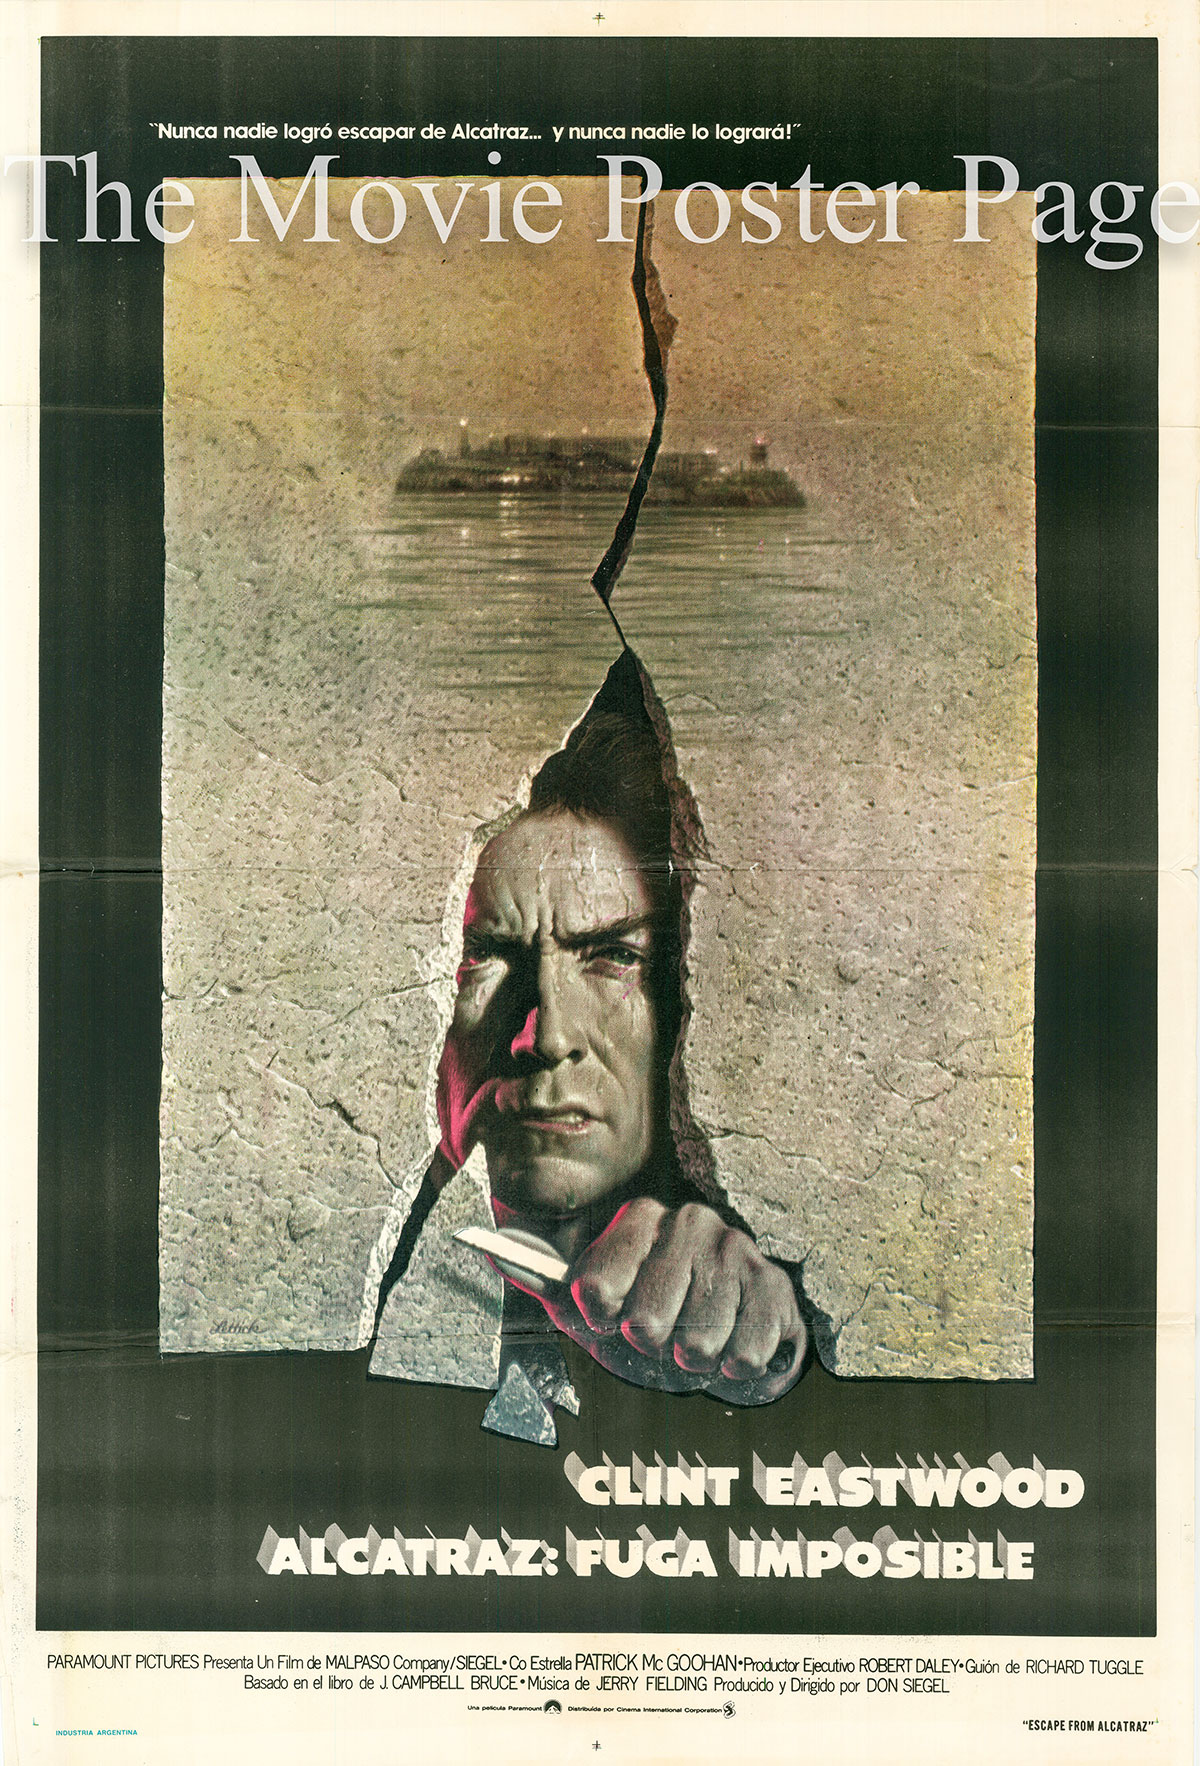 Pictured is a Argentine one-sheet poster for the 1979 Don Siegel film Escape from Alcatraz starring Clint Eastwood.